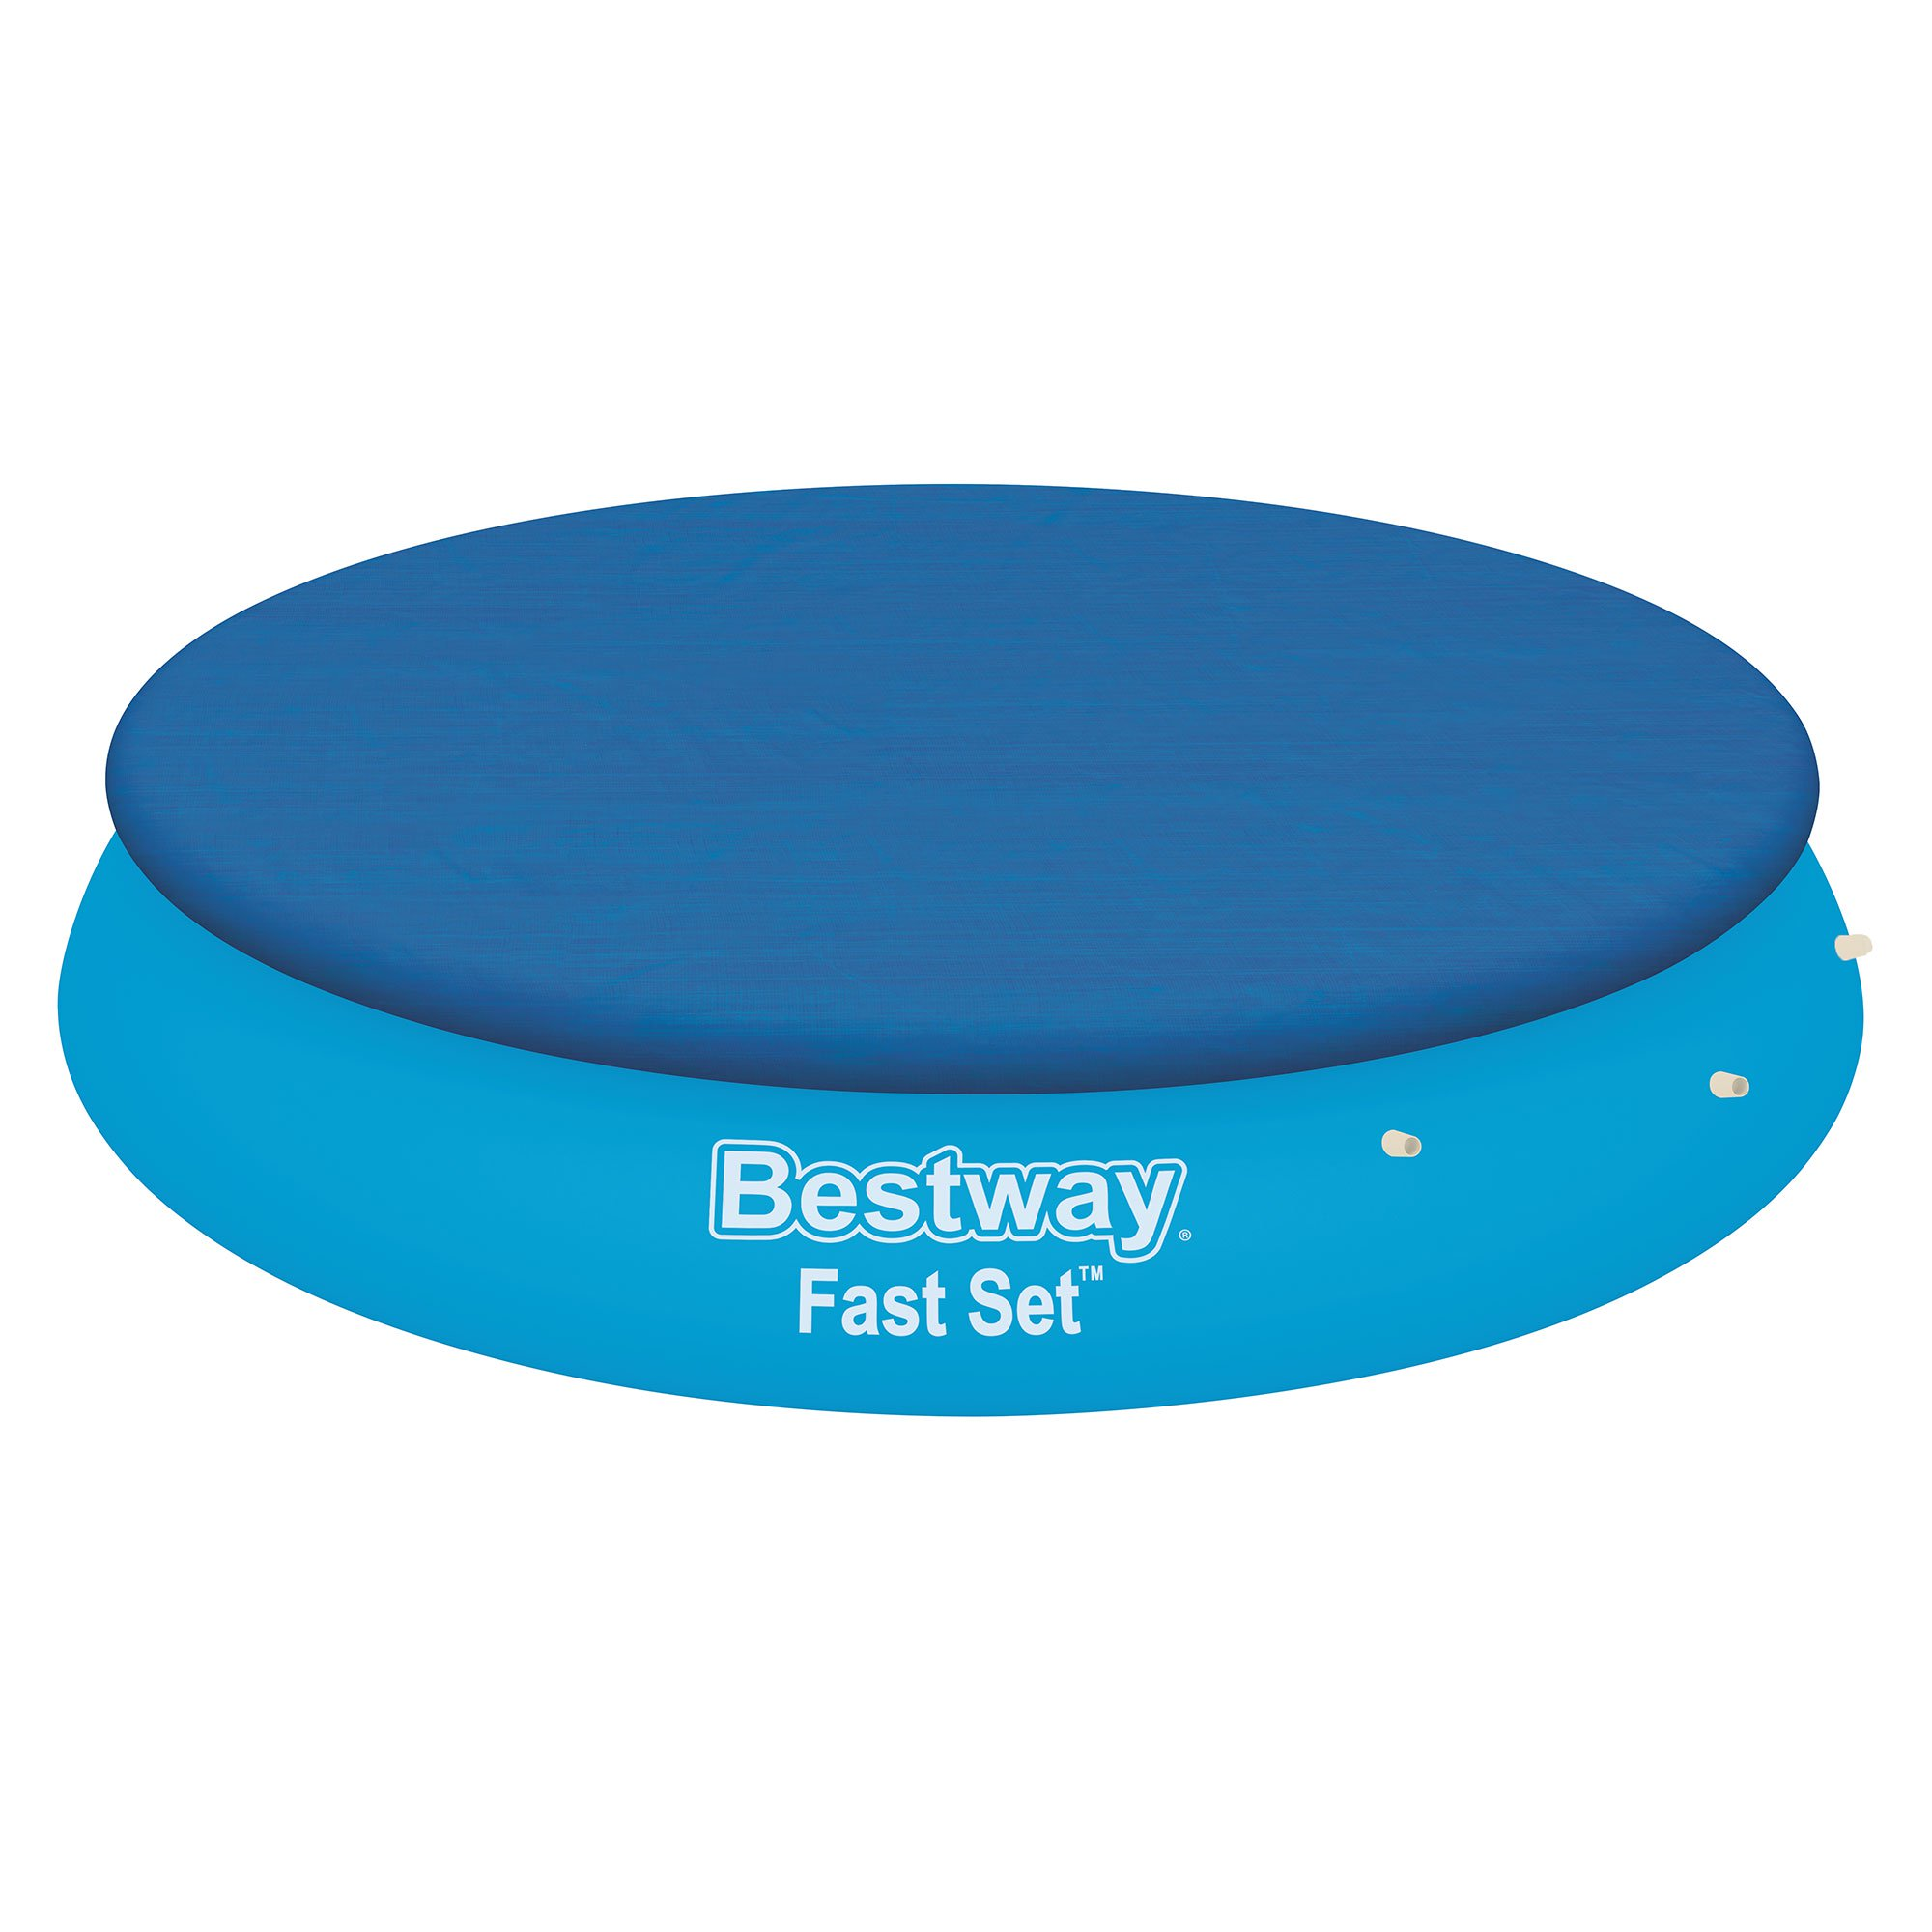 Intex Vs Bestway Review Bestway Fast Set Pool Cover 12